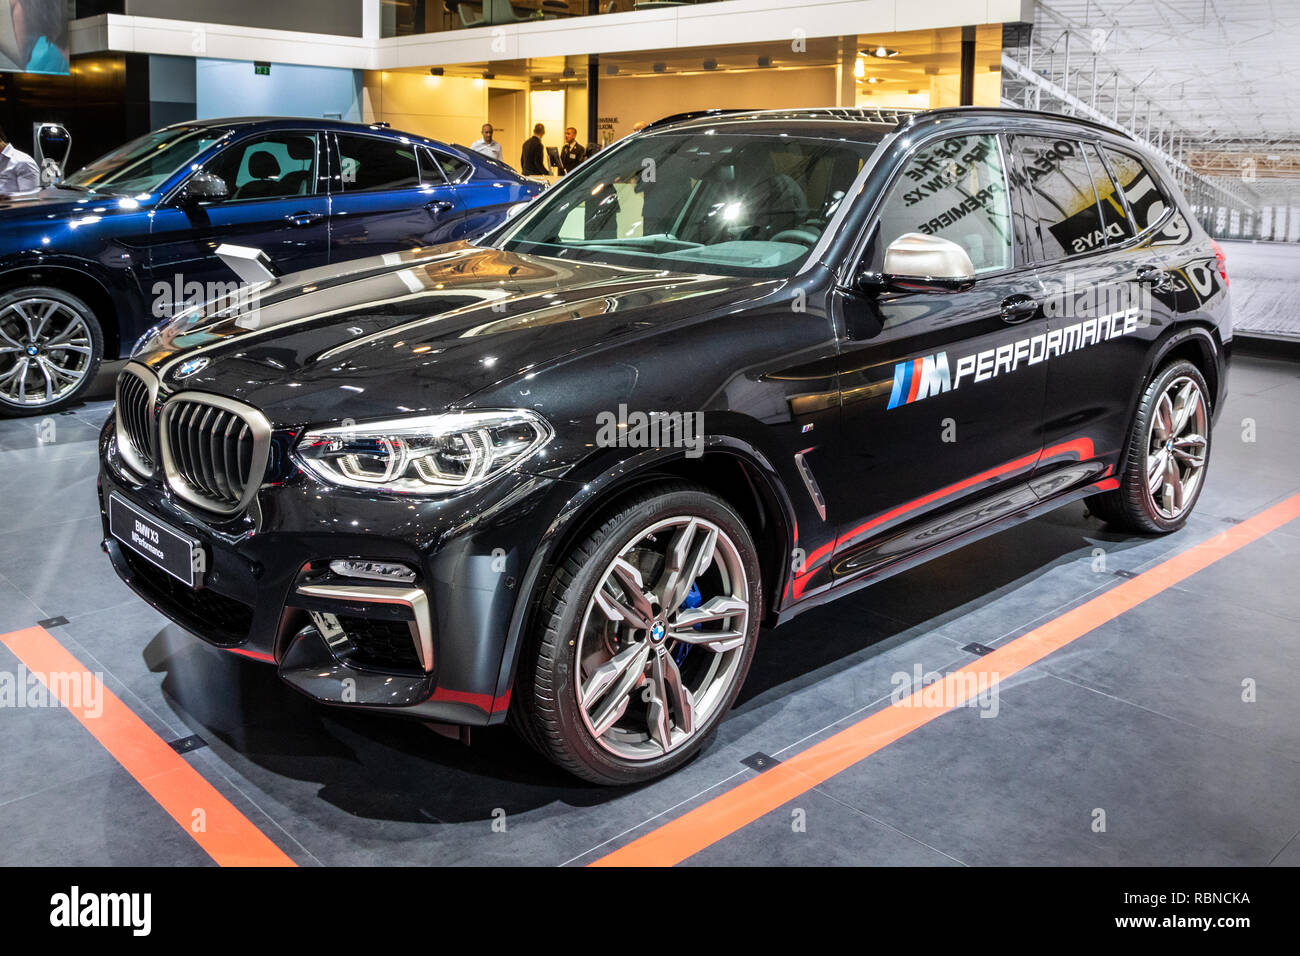 Brussels Jan 10 2018 Bmw X3 M Performance Car Showcased At The Brussels Expo Autosalon Motor Show Stock Photo Alamy